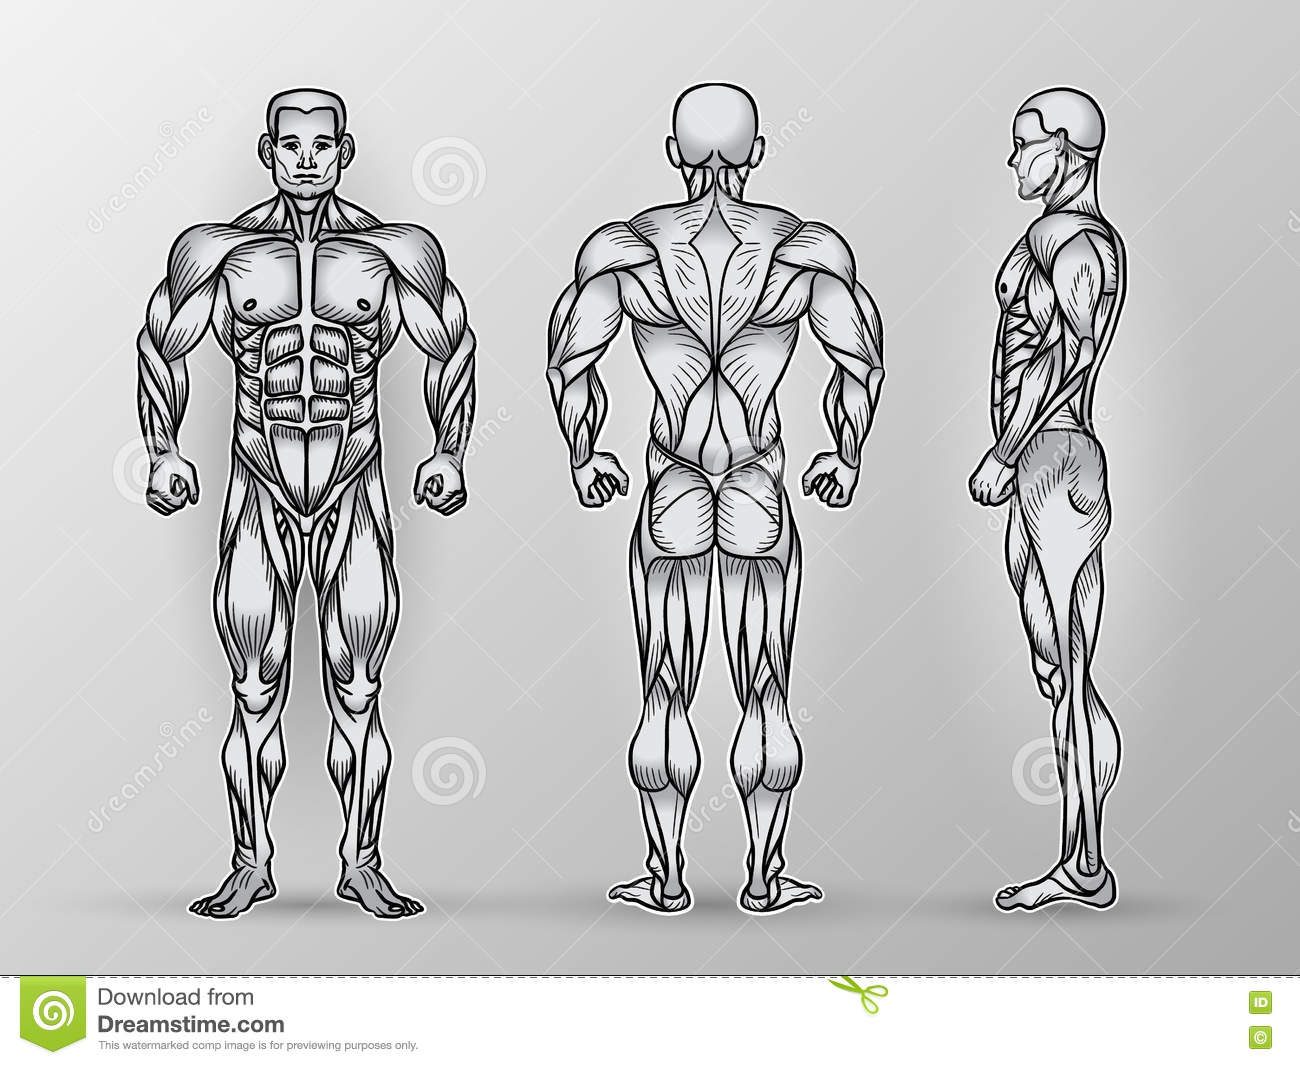 human muscles diagram labeled front and back school bus parts anatomy of male muscular system exercise muscle guide